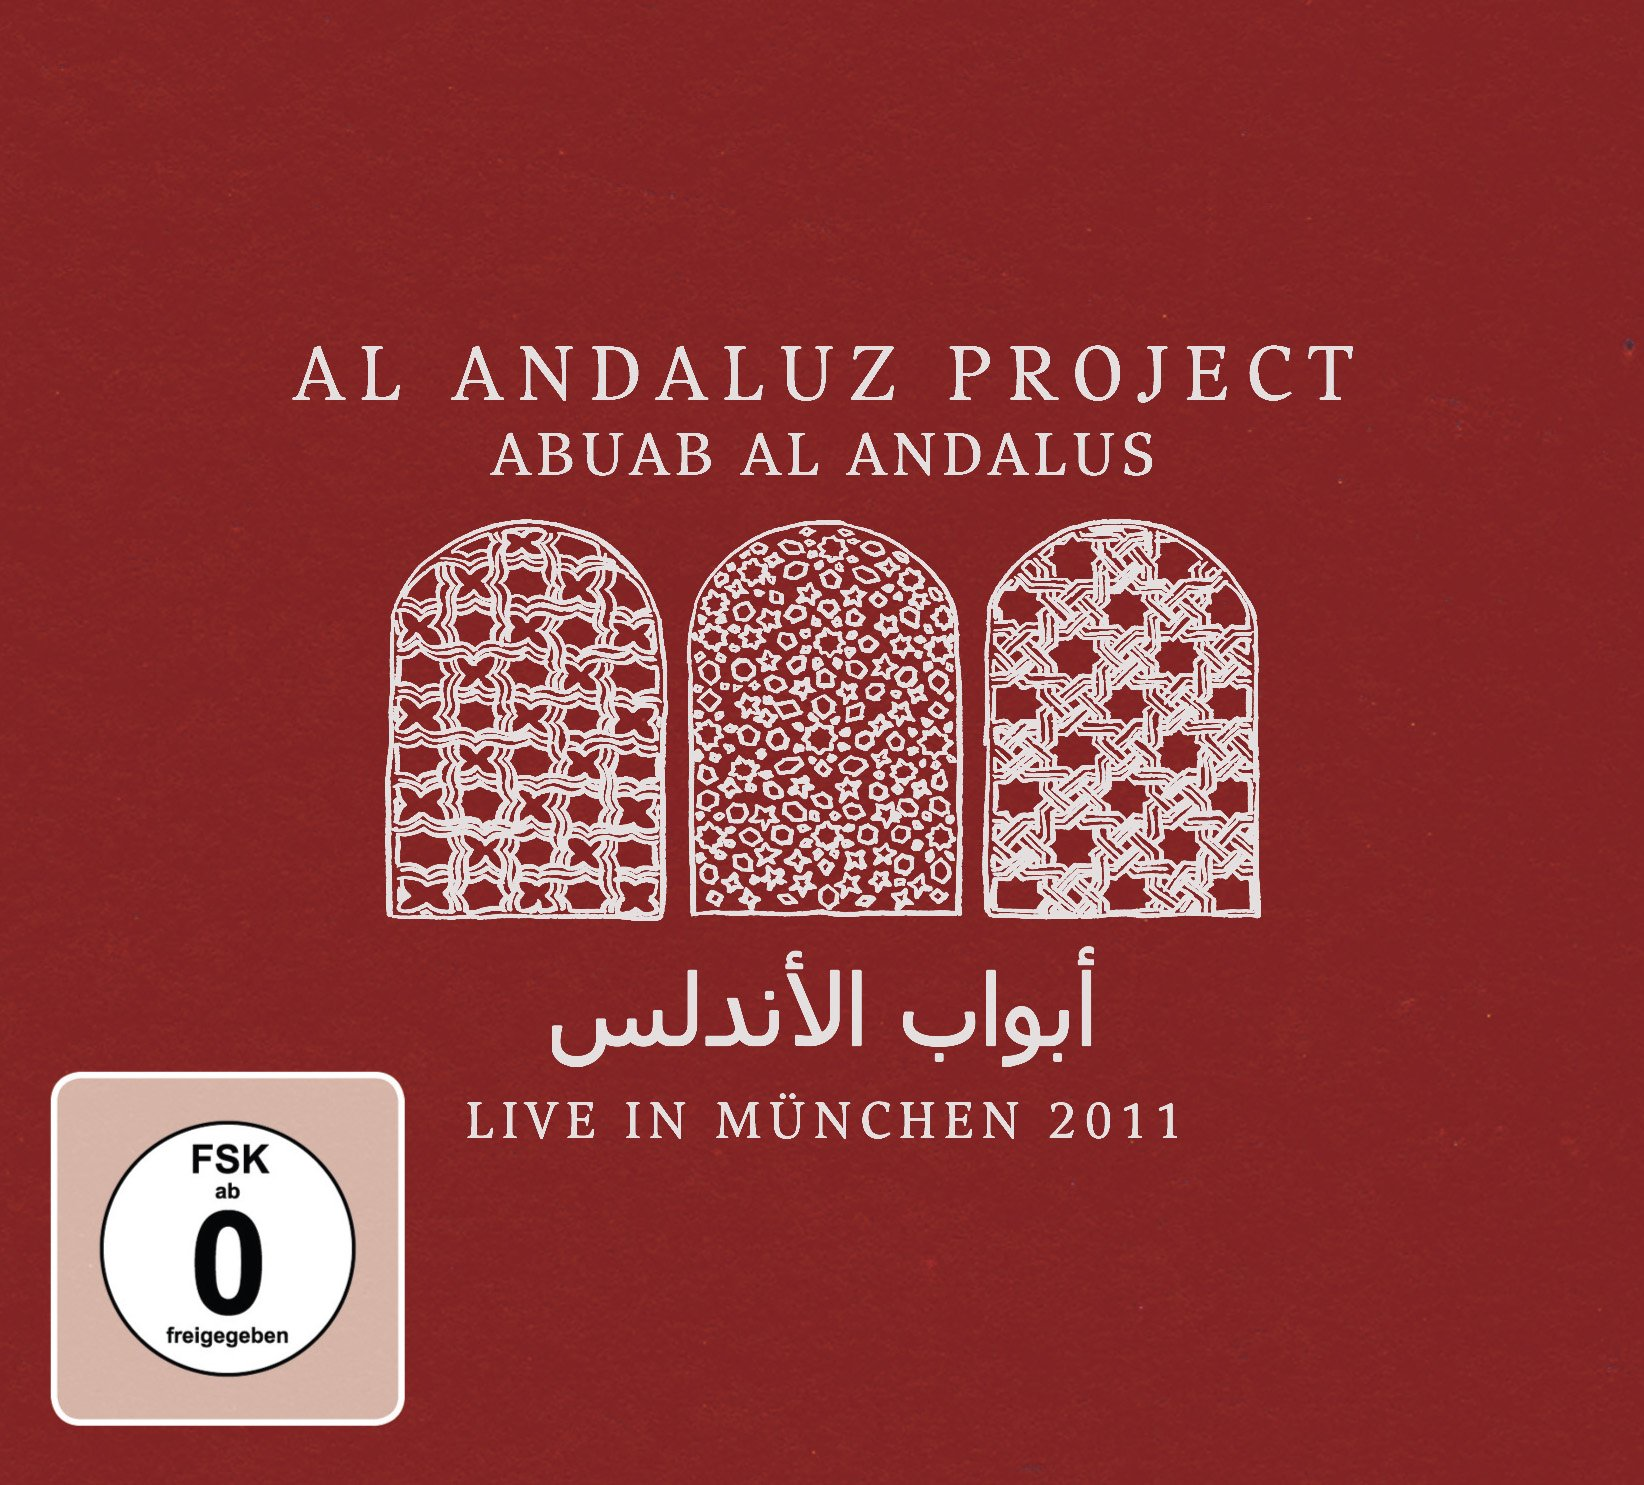 Abuab Al Andalus: Live in Munchen 2011 by Galileo Music Communication